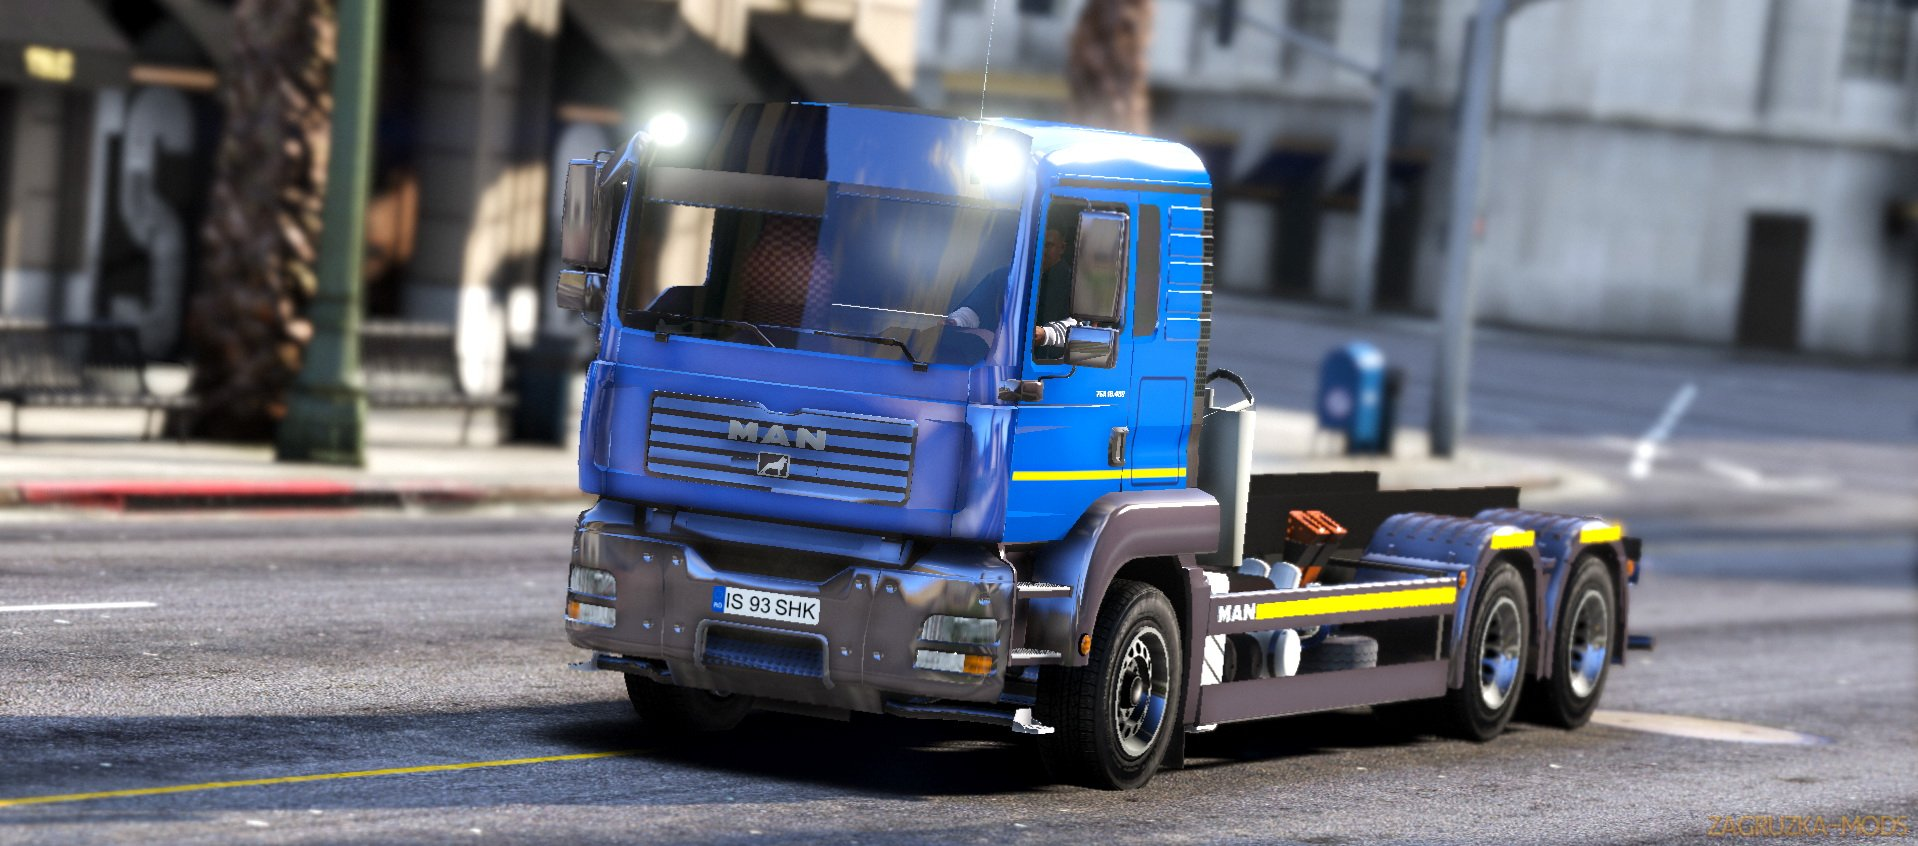 MAN TGA Truck v1.0 for GTA 5